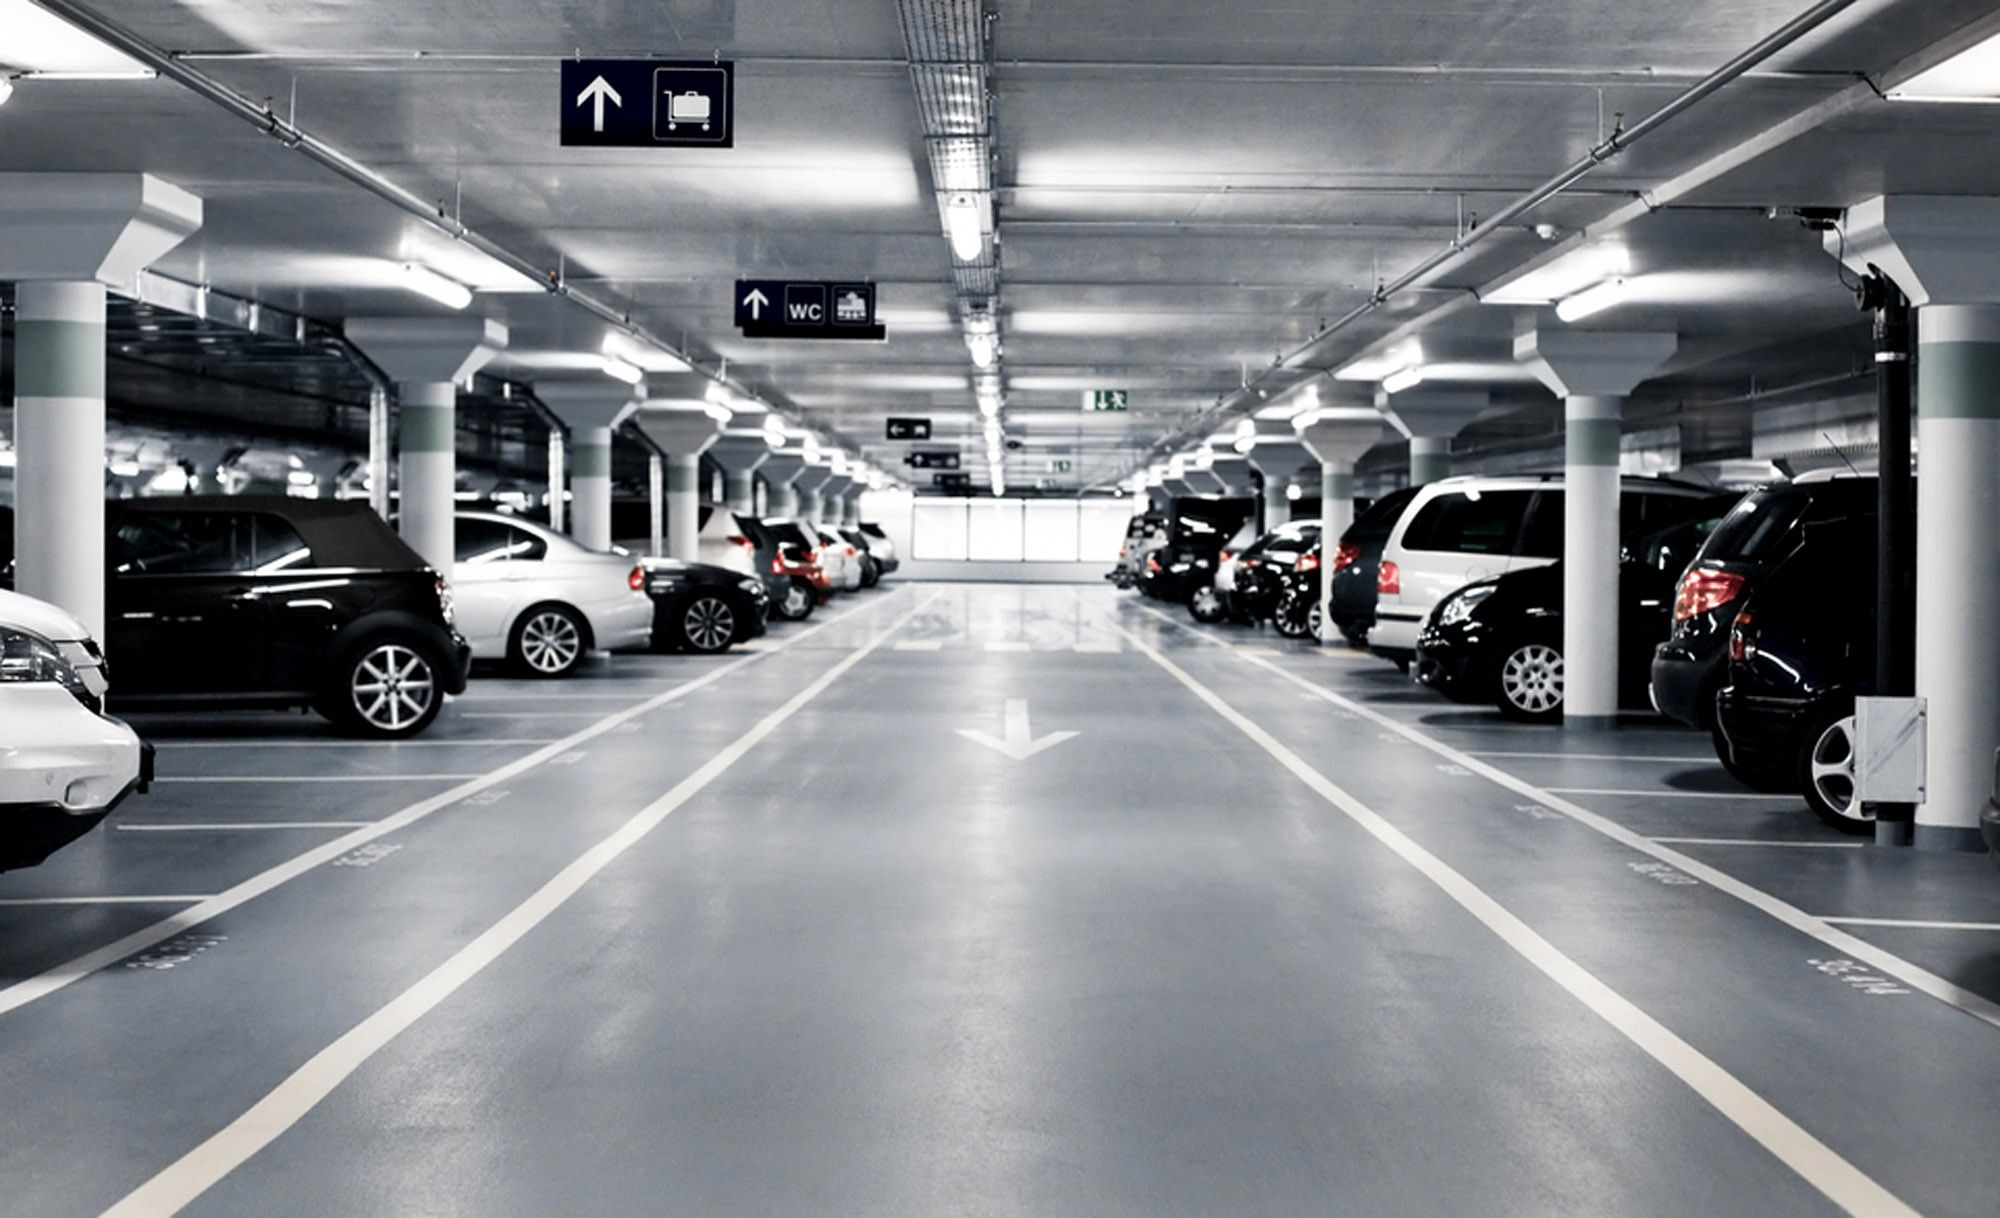 worried about where to park your car? visit parking nexus and find a